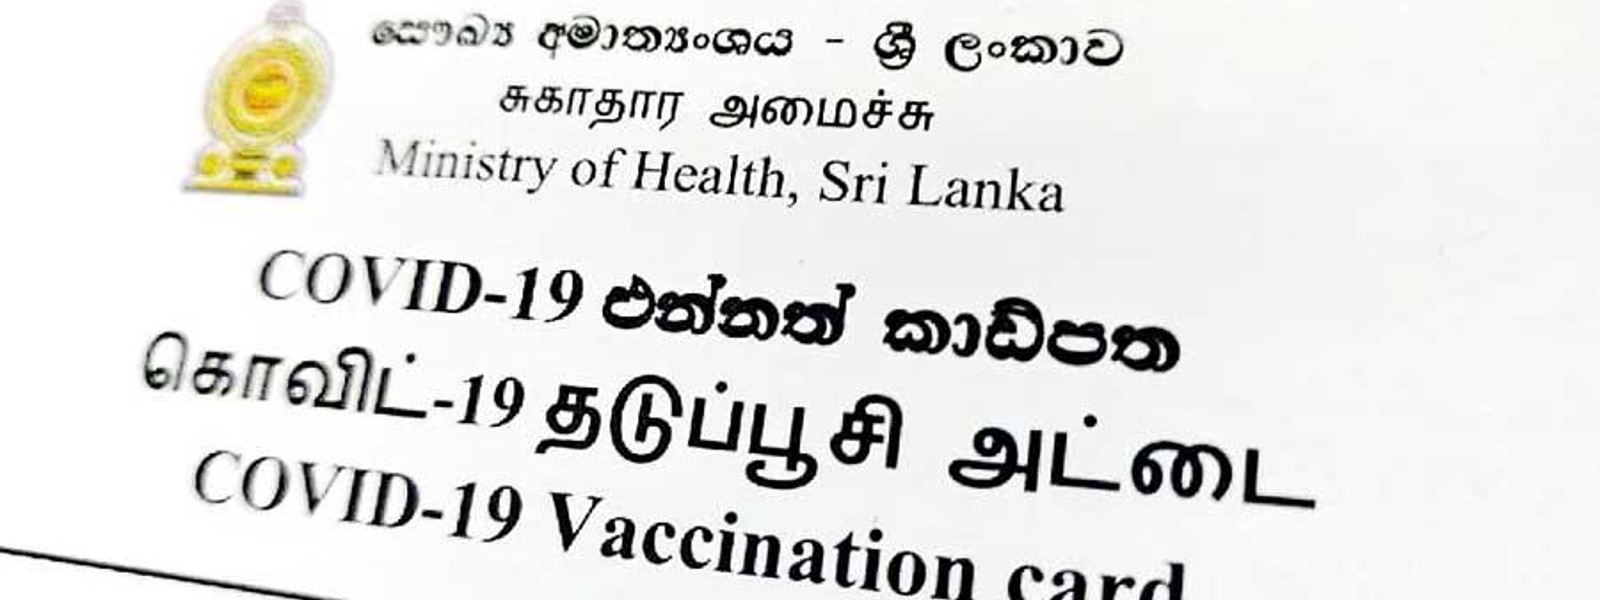 Vaccination Card to be made Mandatory?